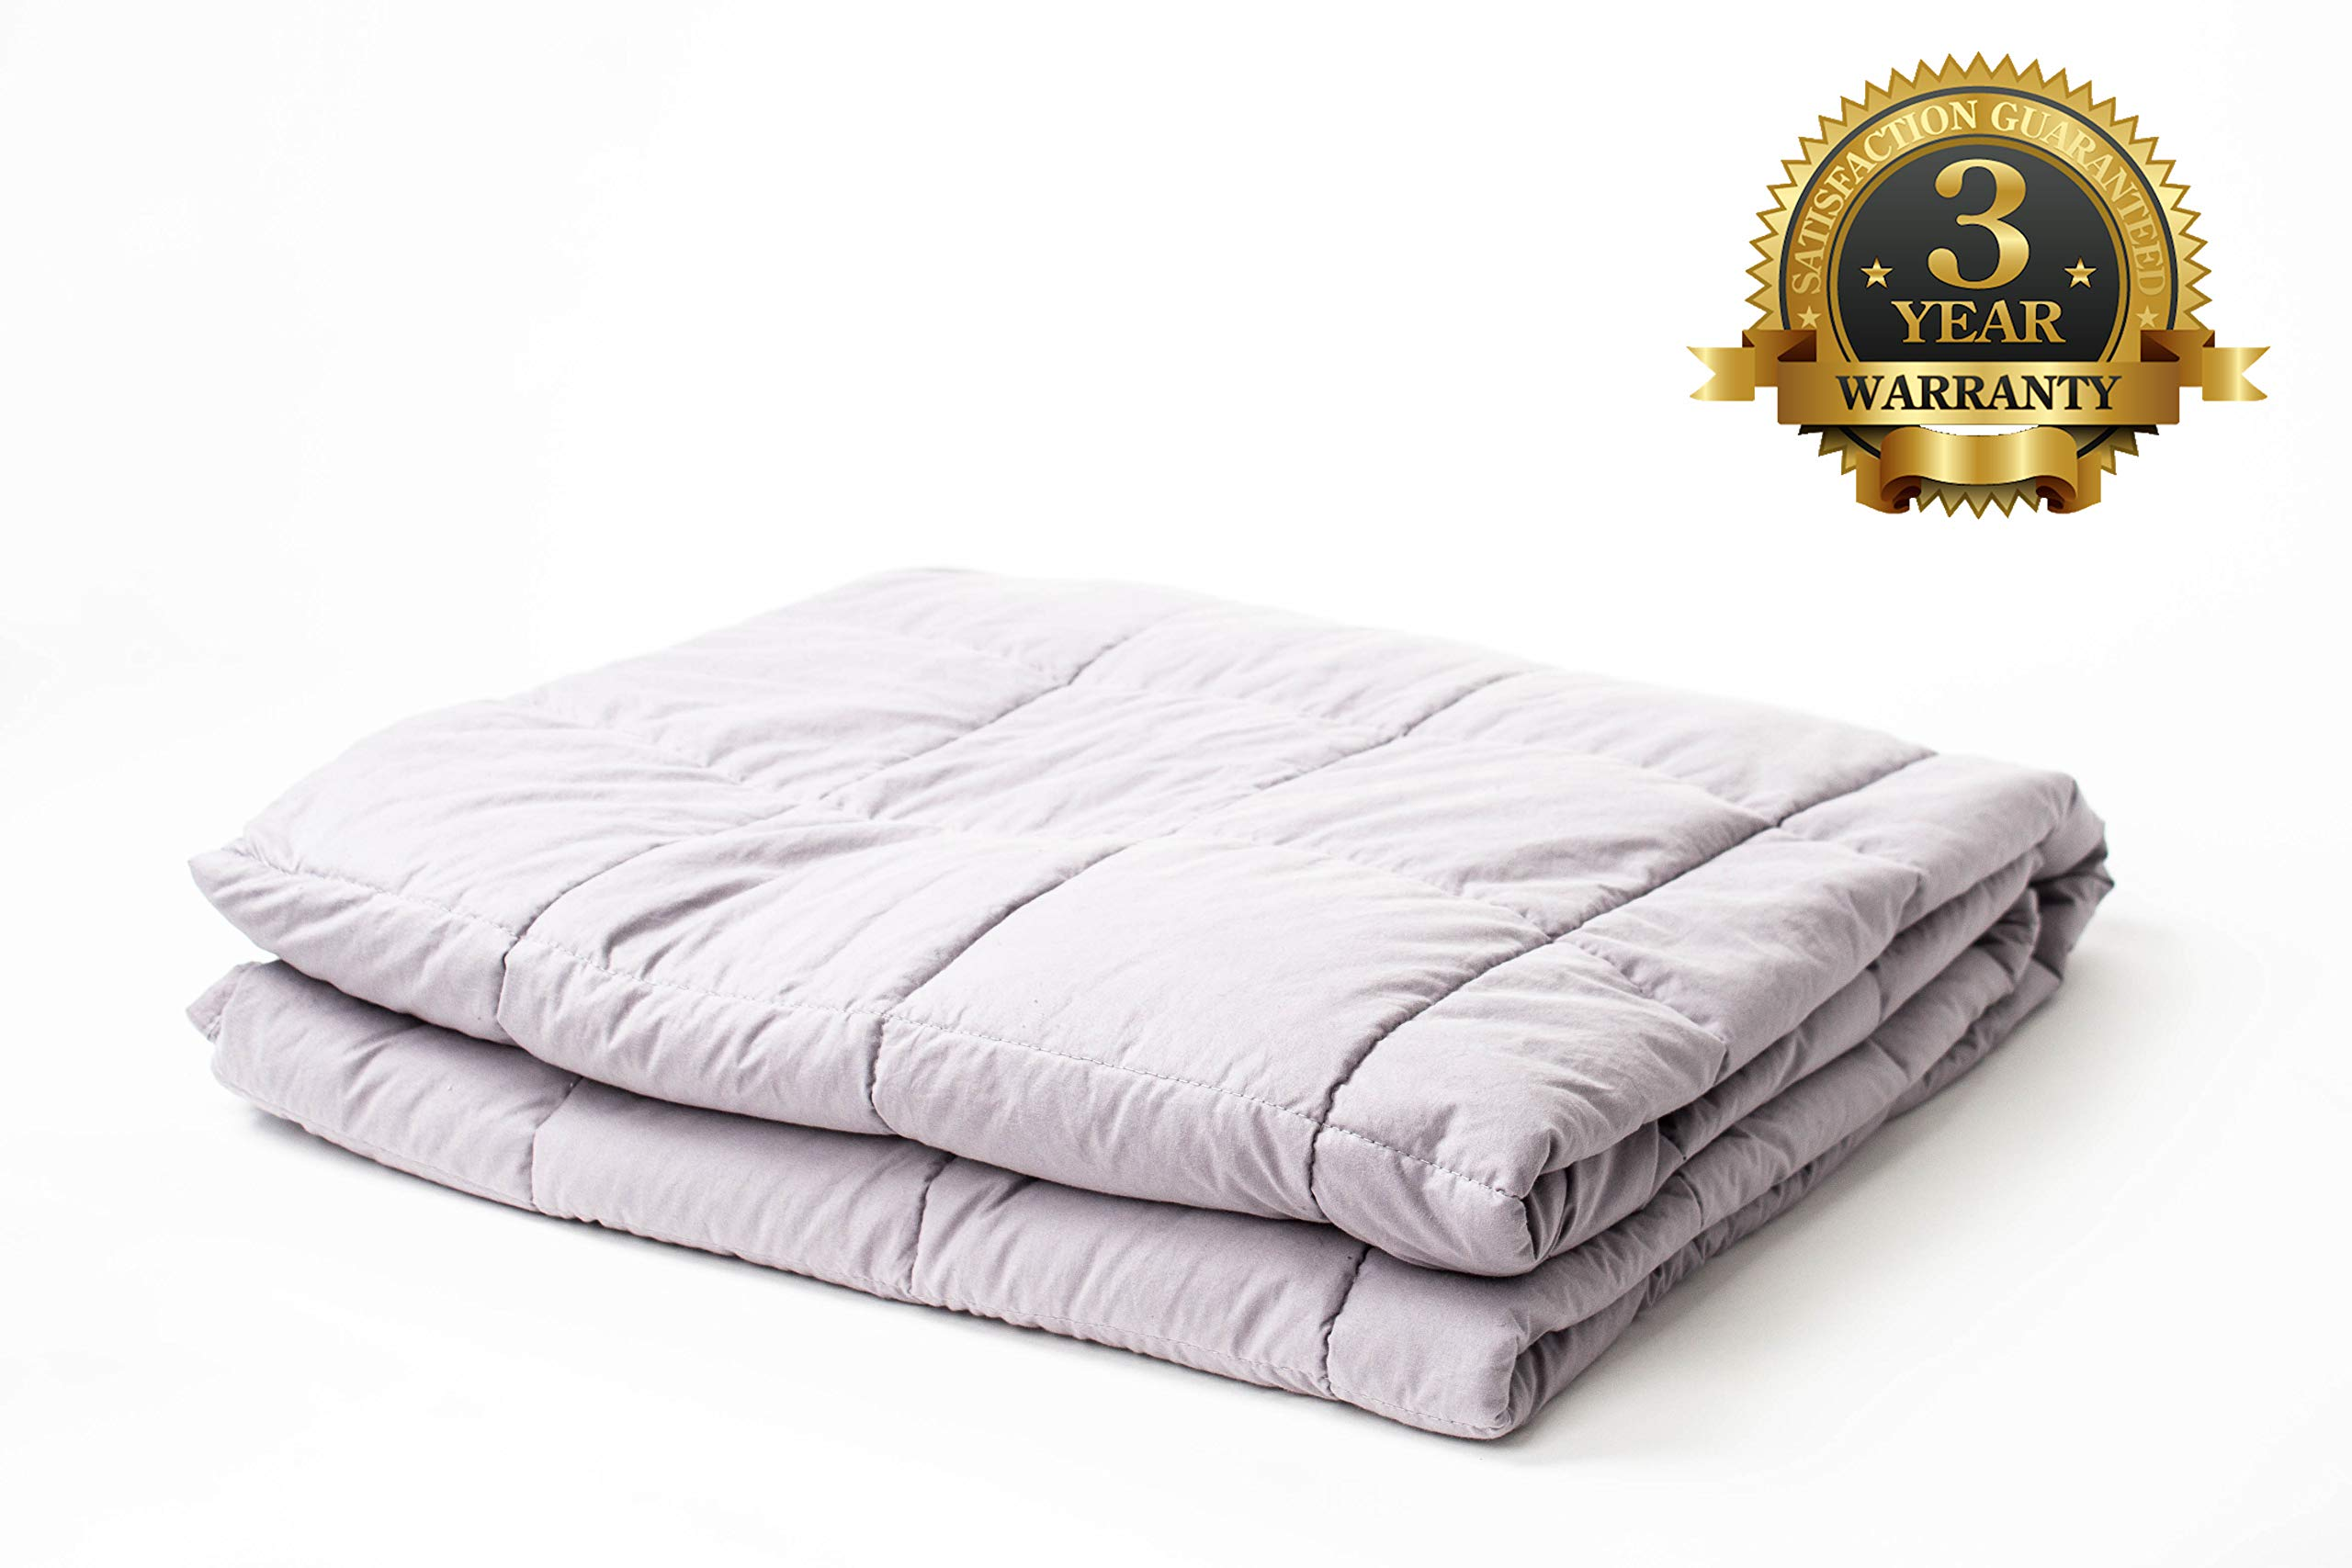 SYC & CO Premium Weighted Blanket & 100% Cotton Removable Cover Gravity 20LBS 60x80 Calming Heavy Blankets Therapy Full Size for Adults with Free Travel Bag